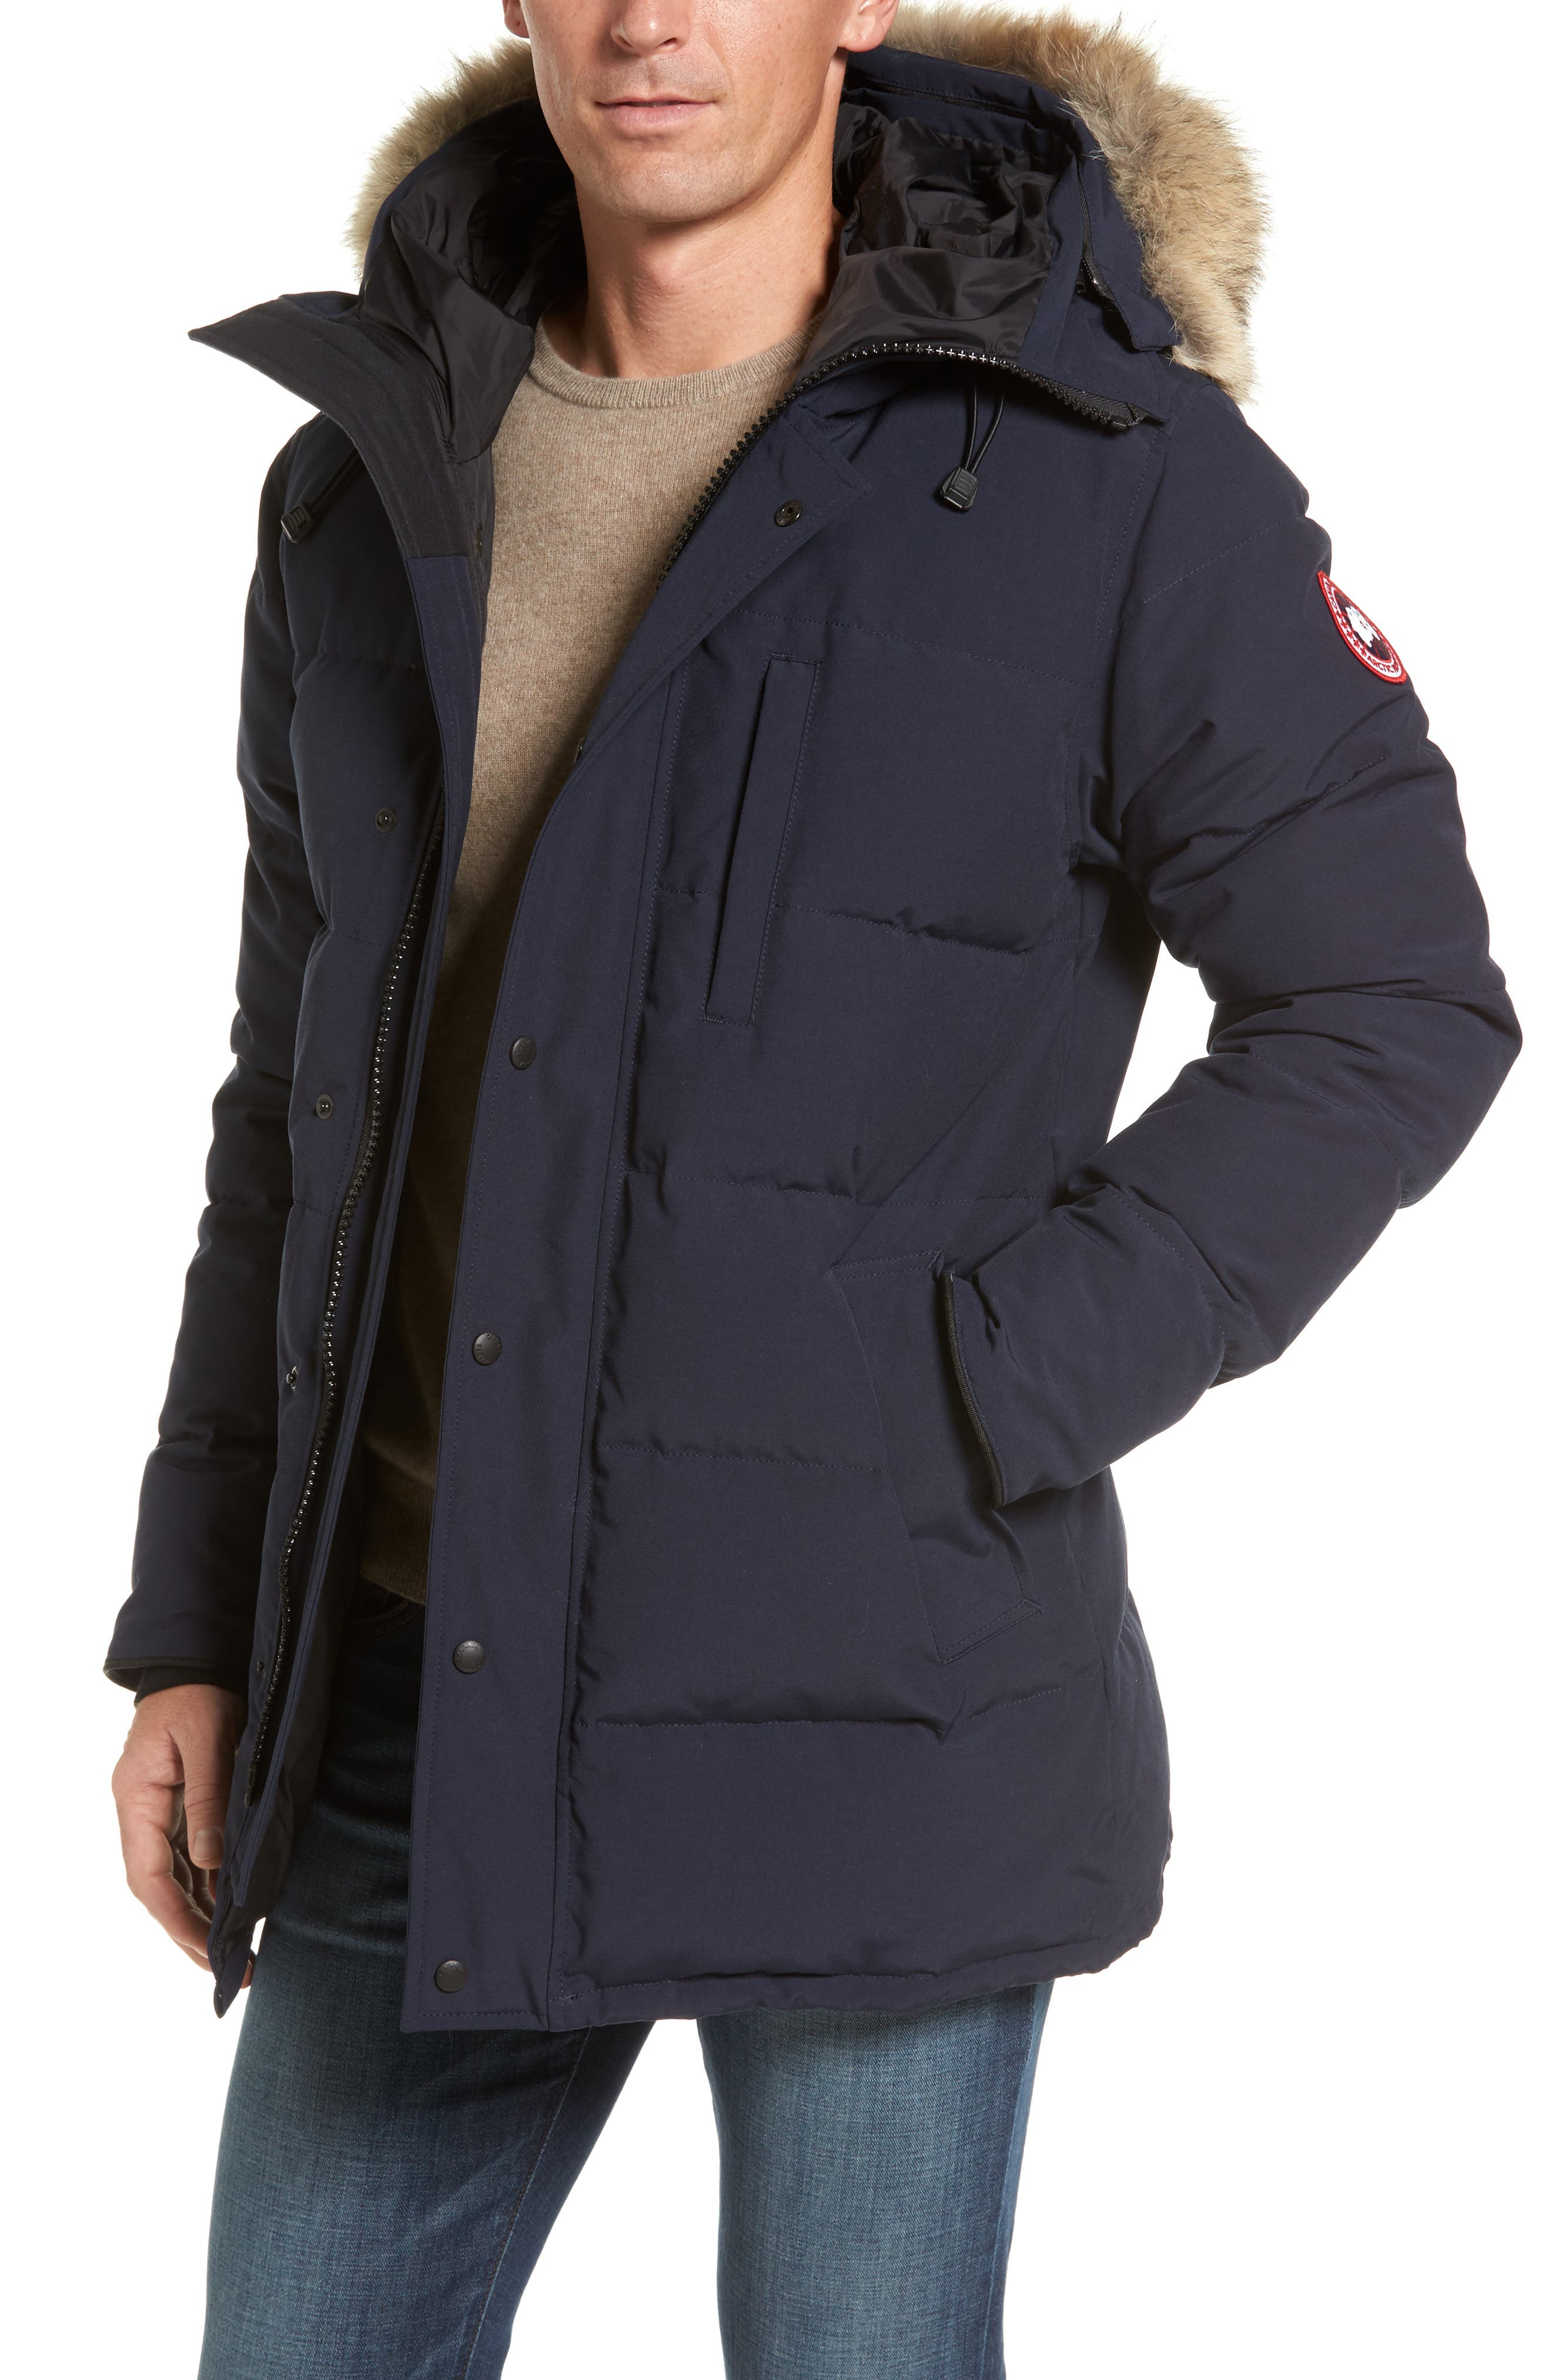 Canada Goose 'Carson' Slim Fit Hooded Packable Parka with Genuine Coyote Fur Trim